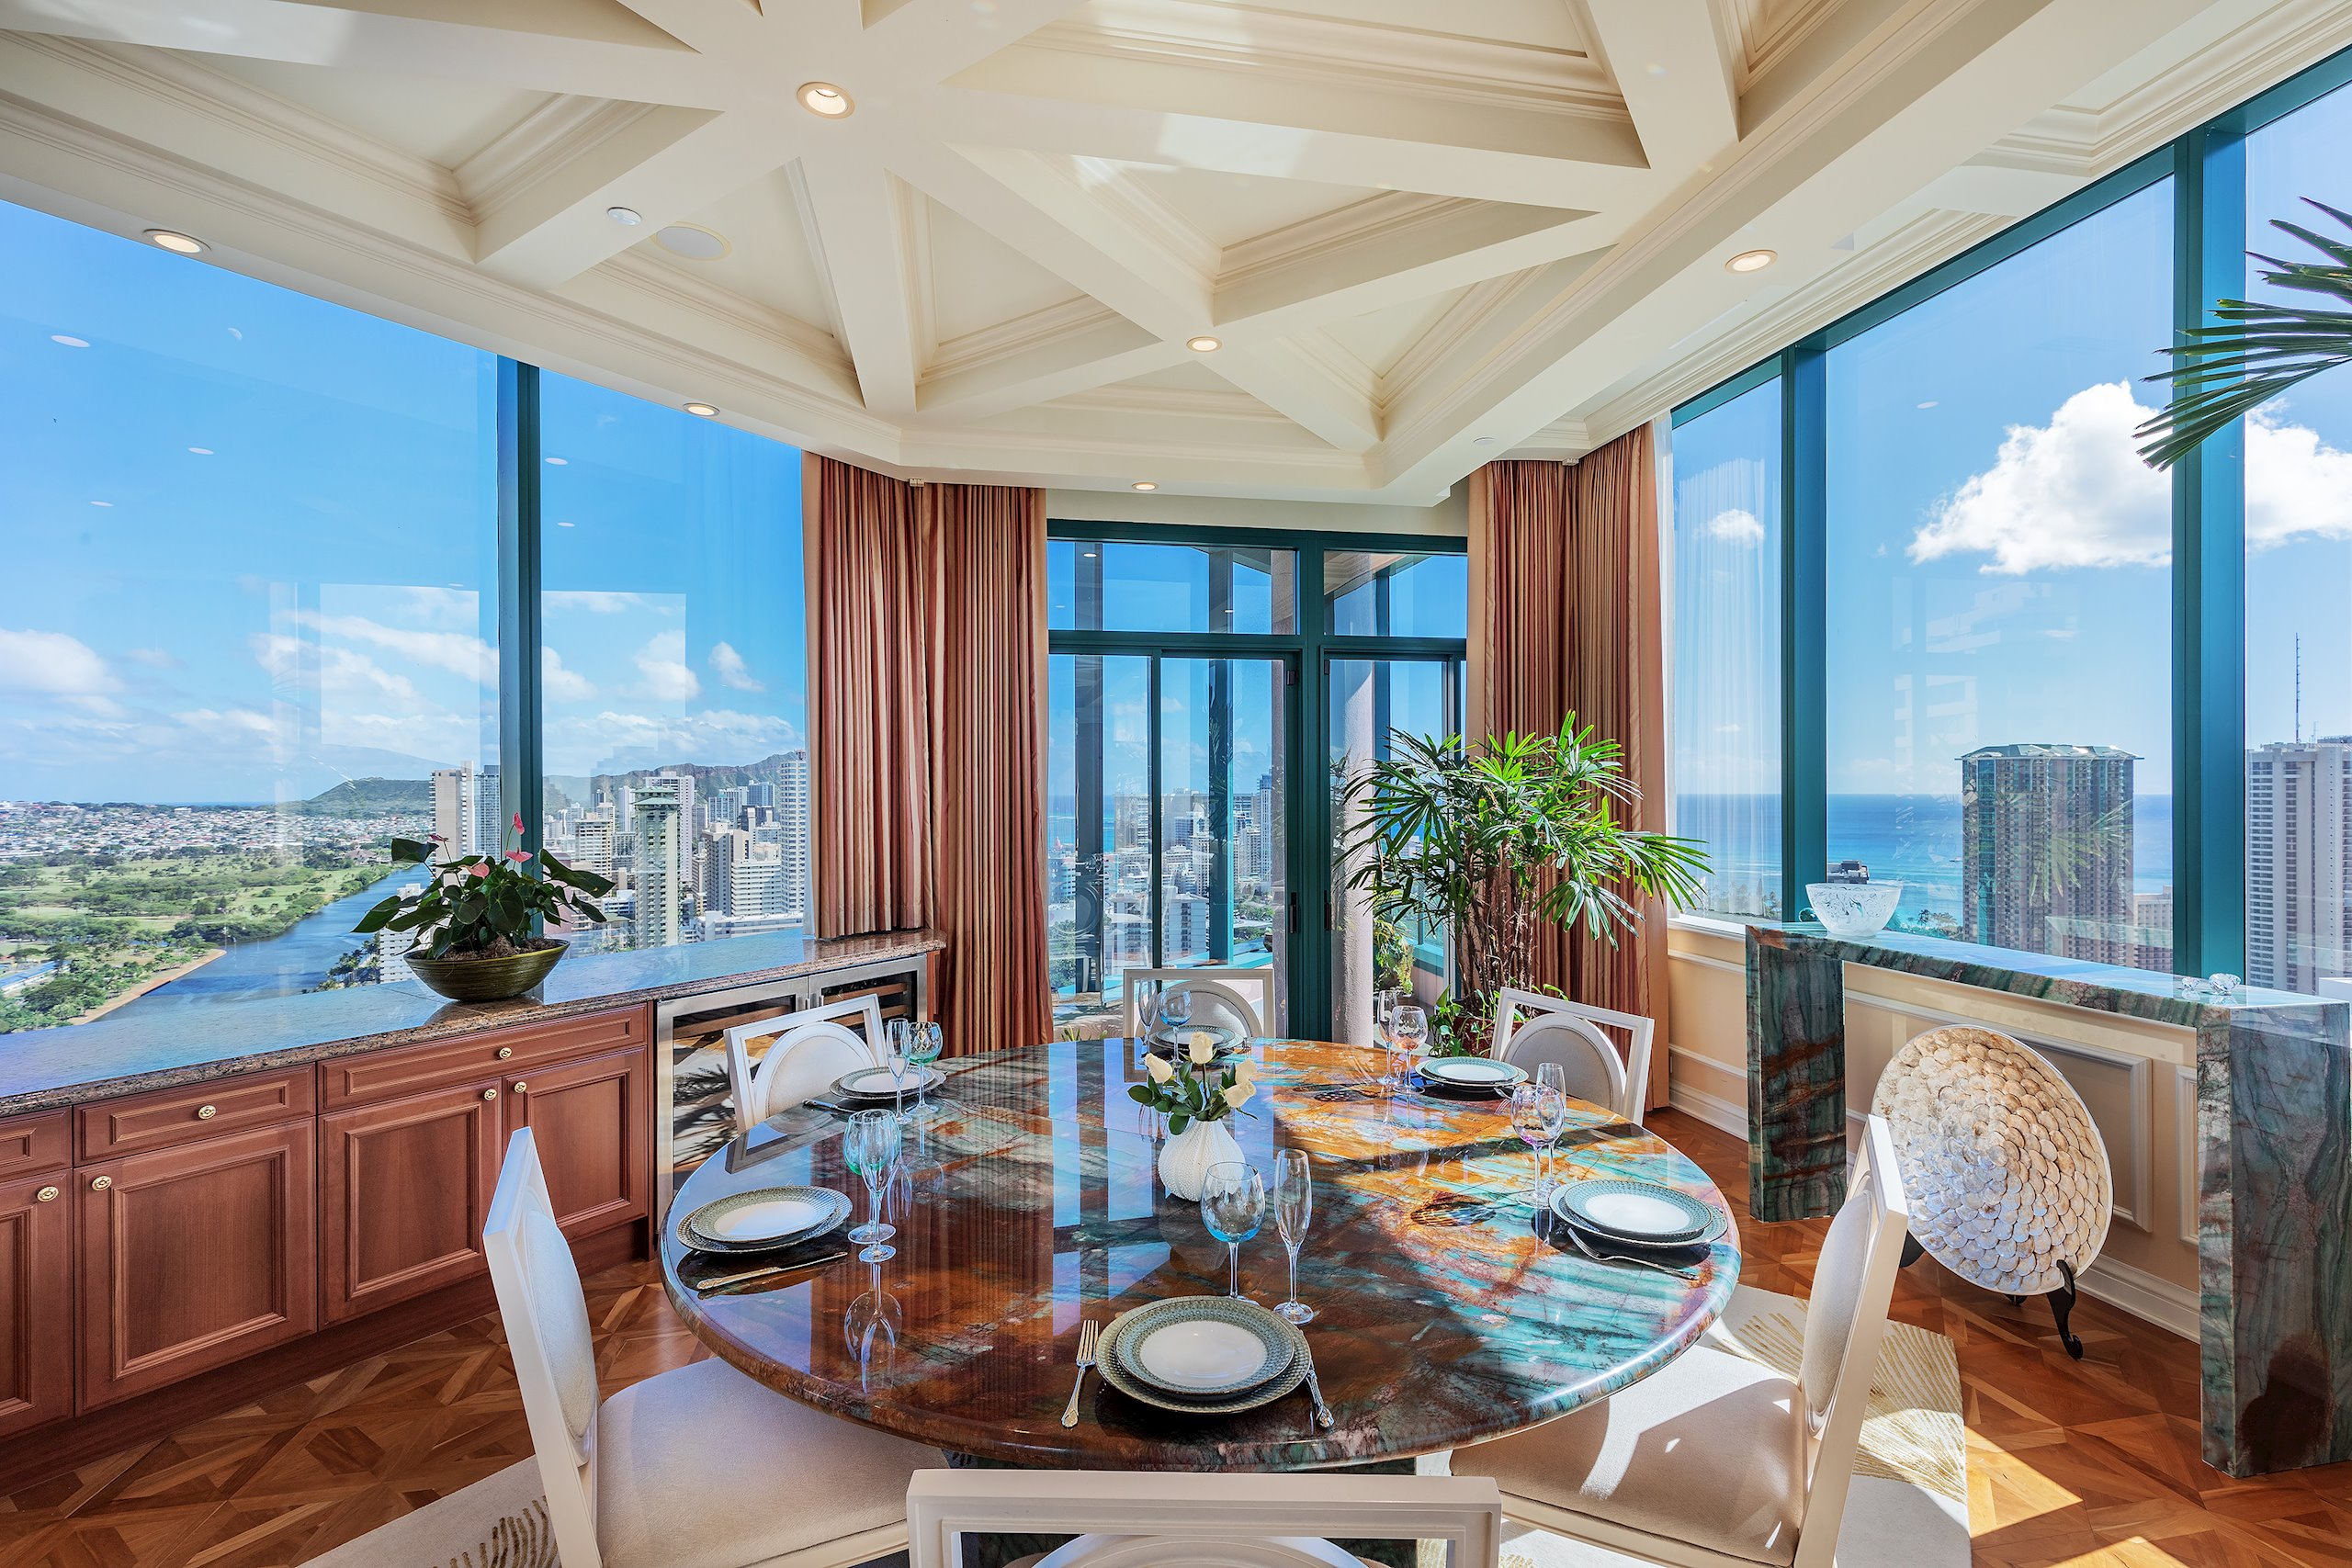 Refined luxury in this Brownstone inspired Waikiki Landmark Penthouse. Revel in the splendor of nearly 5,000 square feet of indoor an...